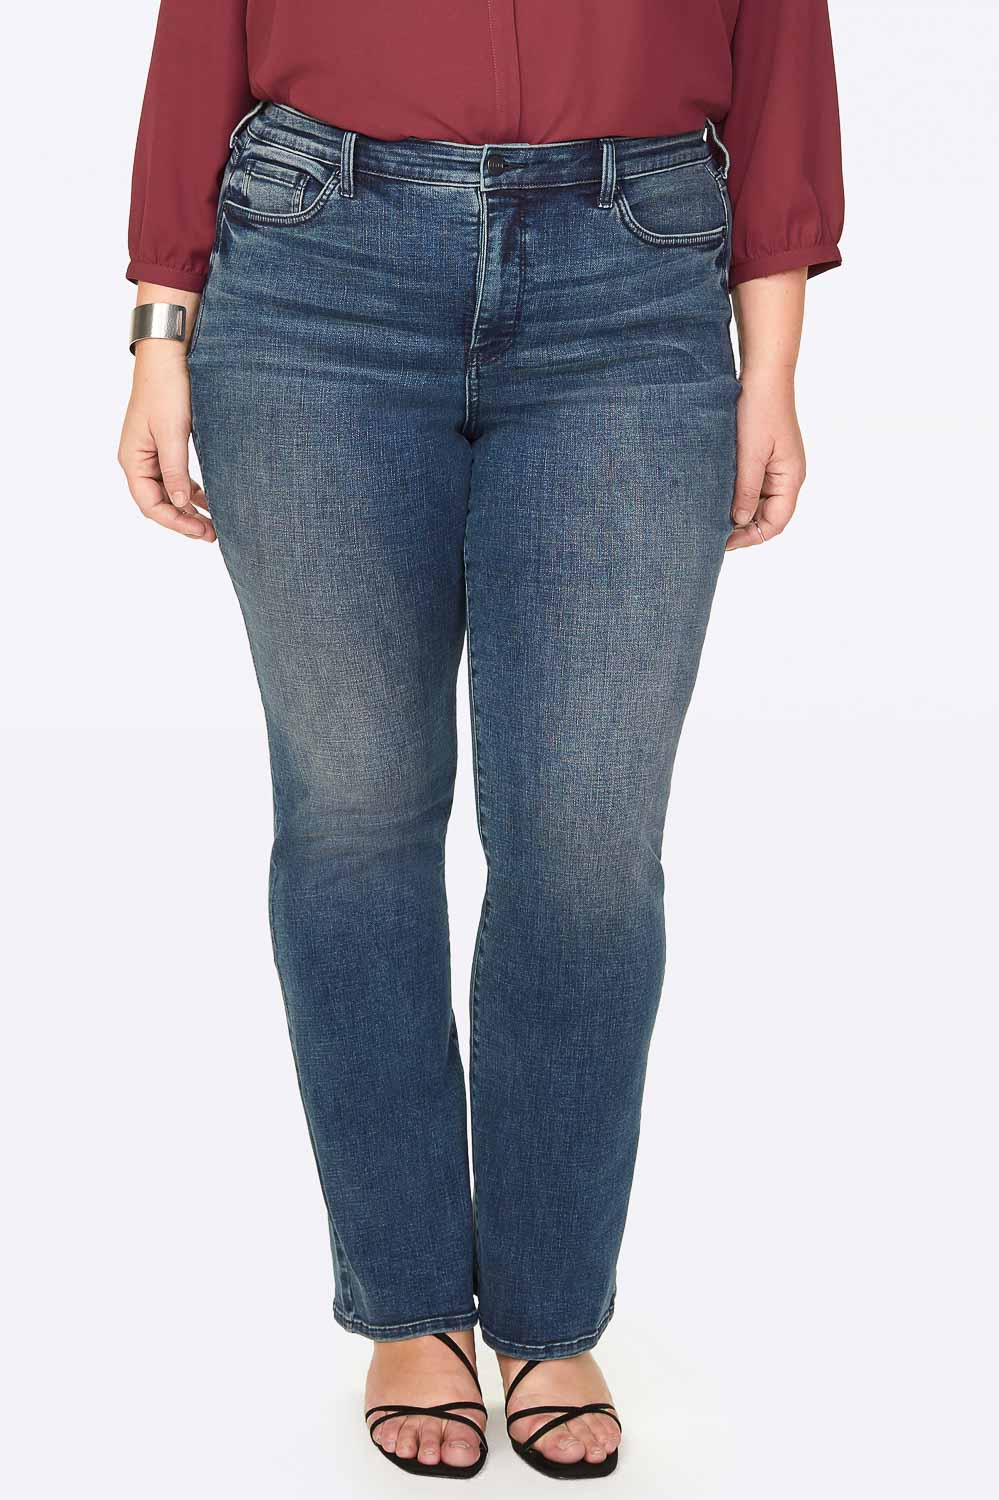 Barbara Bootcut Jeans In Plus Size - LOMBARD